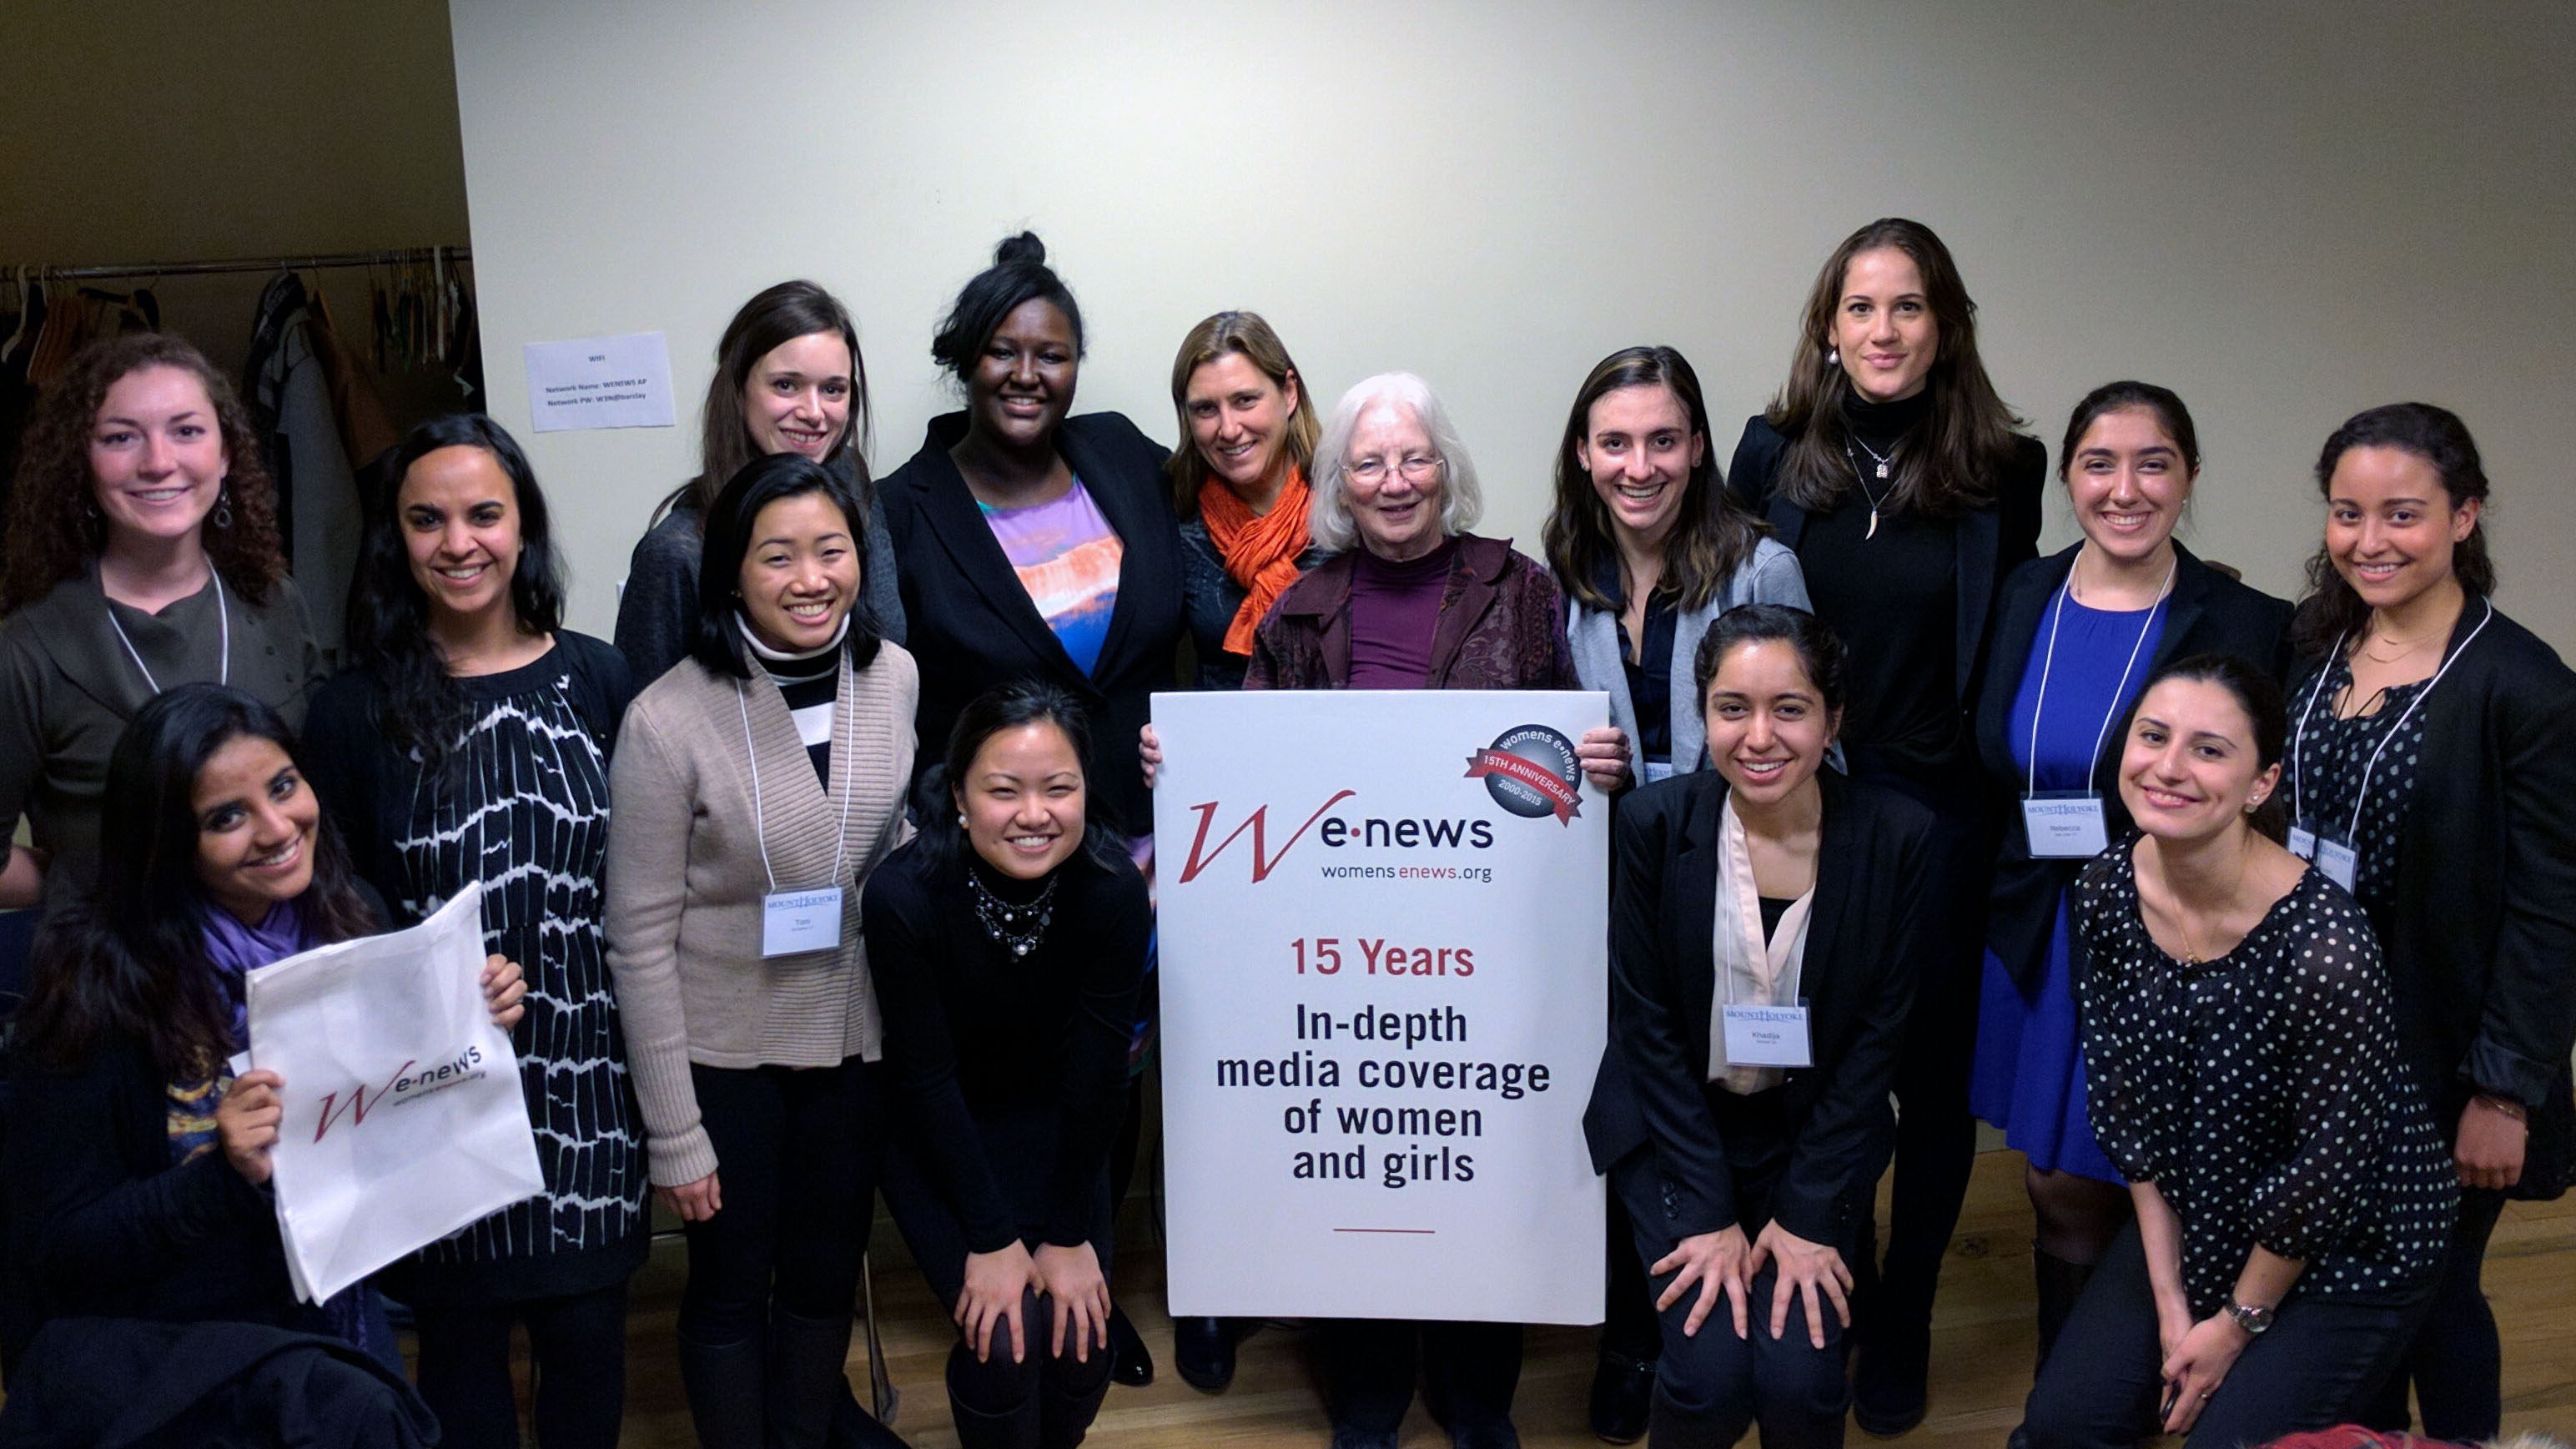 MHC students at Women's eNews for Lynk on the Road, NYC